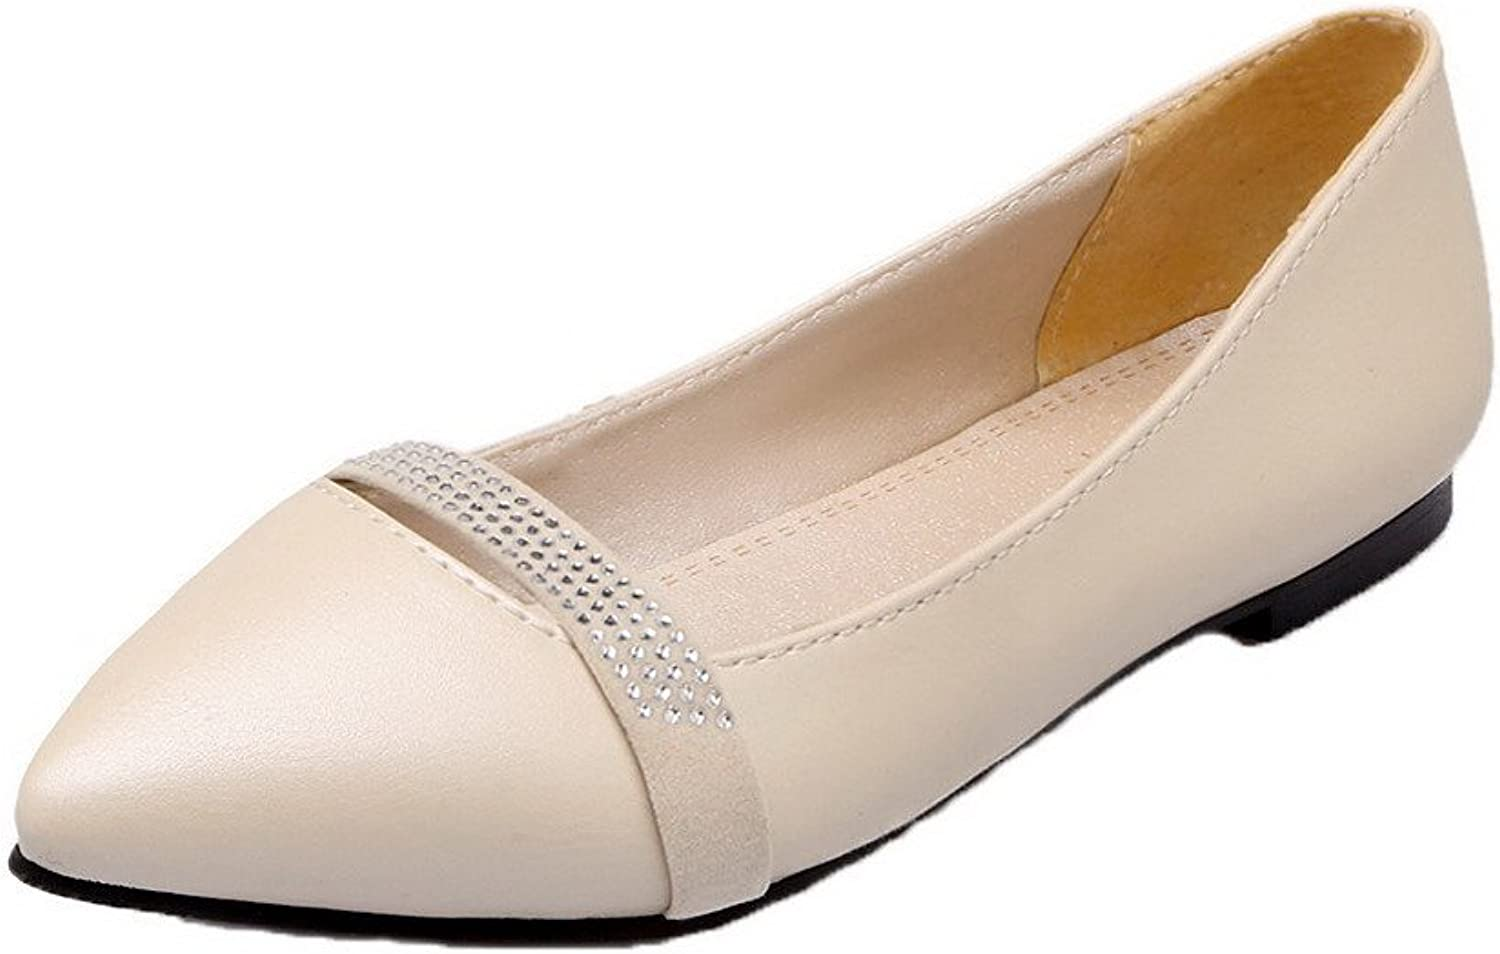 WeiPoot Women's PU Low-Heels Solid Pull-On Closed-Toe Pumps-shoes